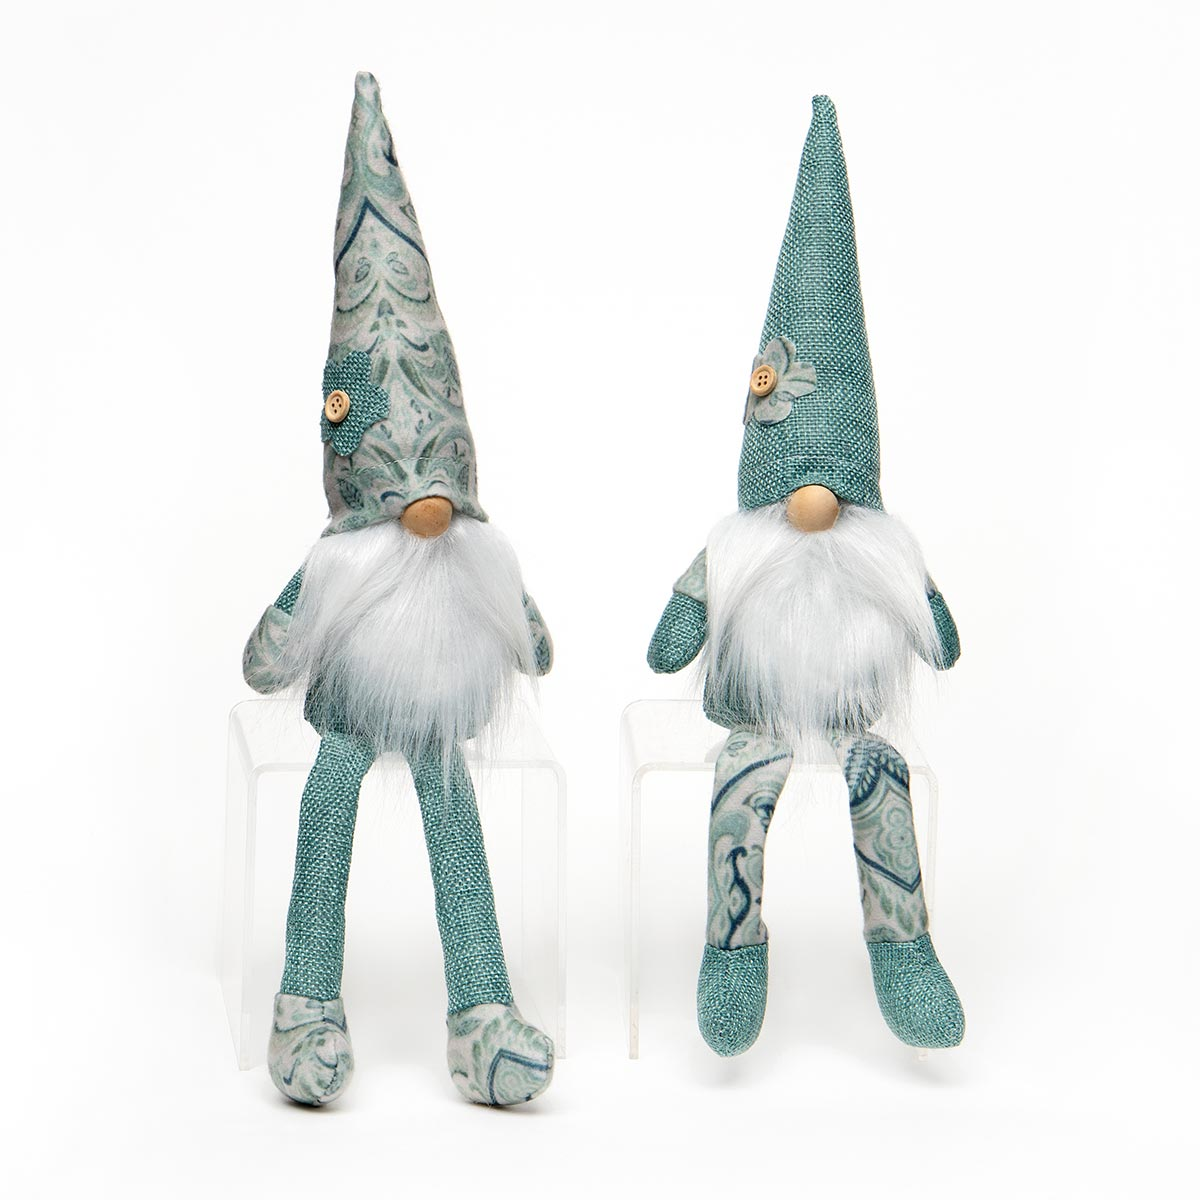 CHATEAUX BOYS GNOME WITH HAT, WOOD NOSE